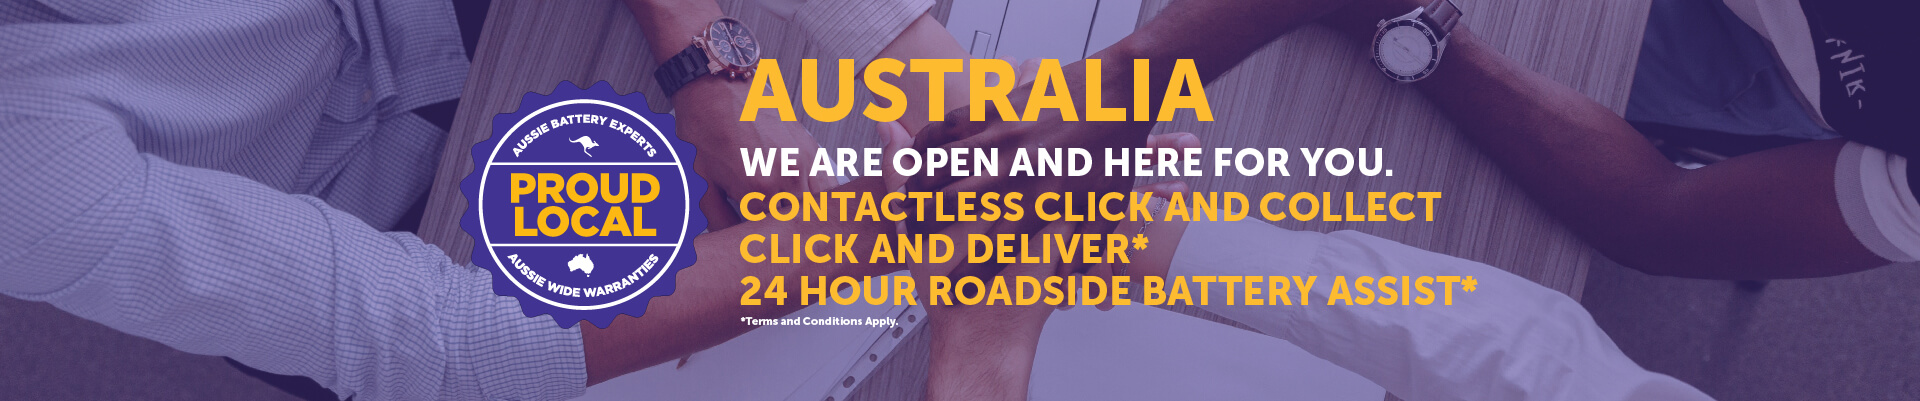 Australia we are open and here for you